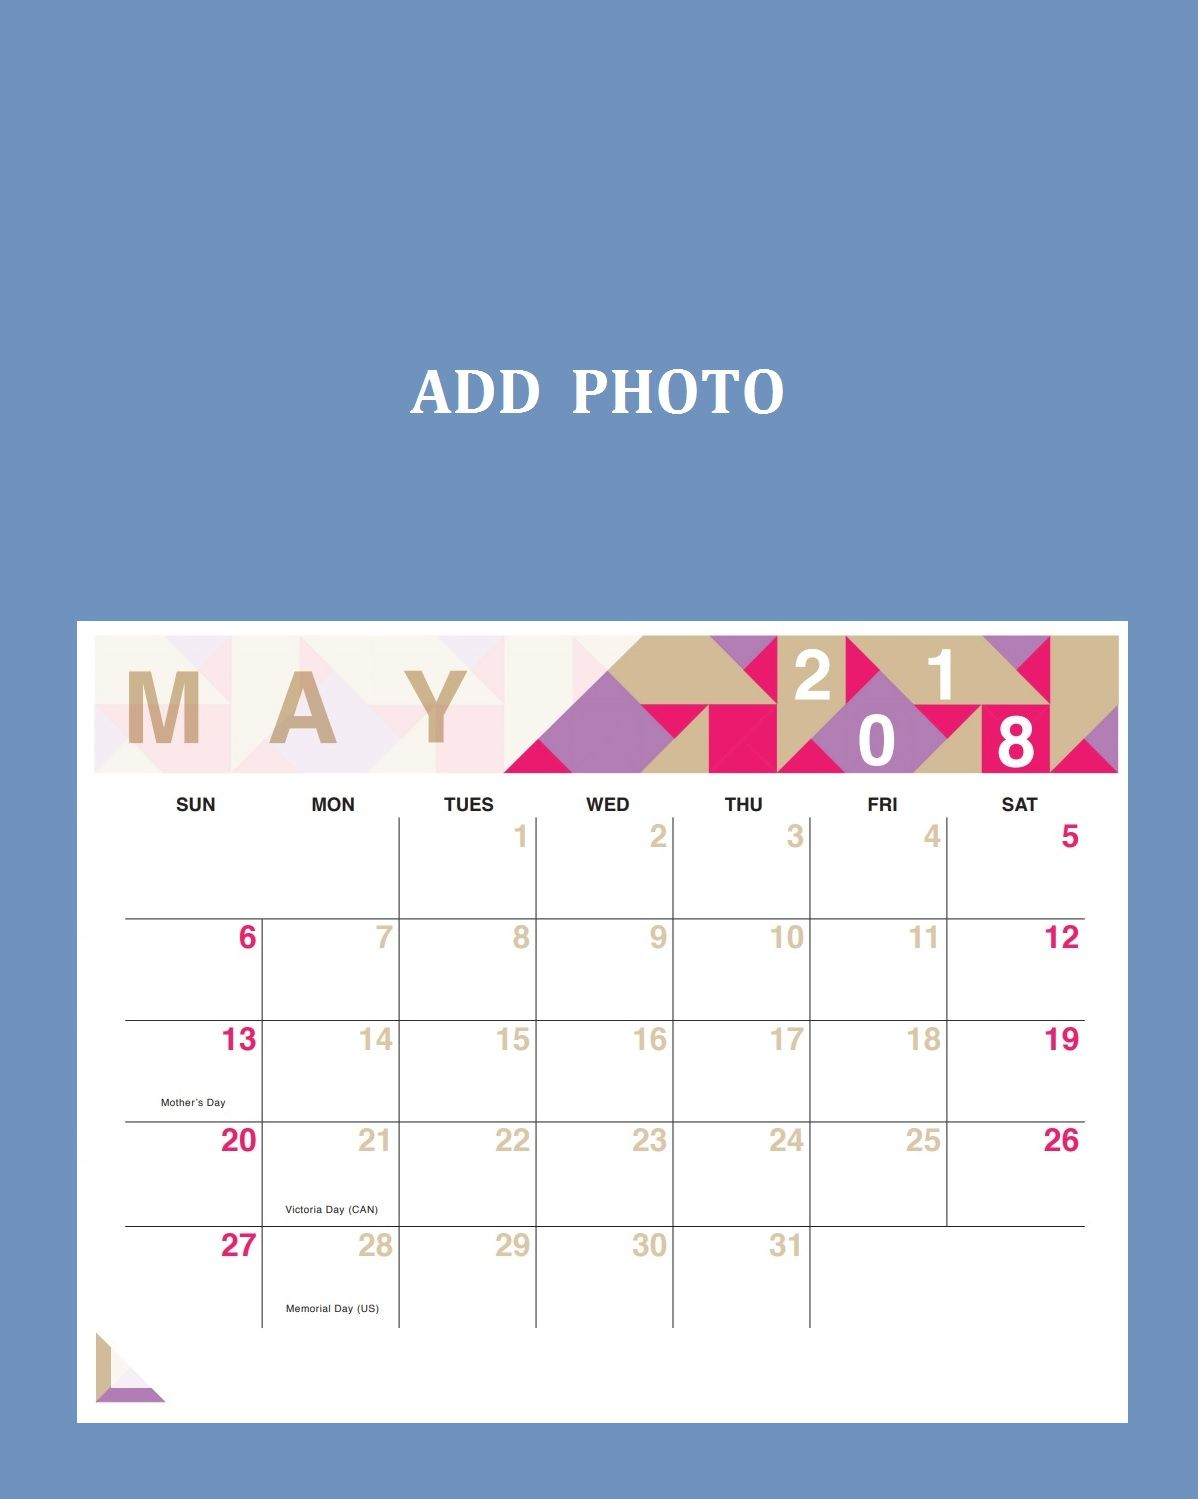 May 2018 Personalized Calendar Free | 2018 Calendar Template within Personalized Calendar Maker Philippines